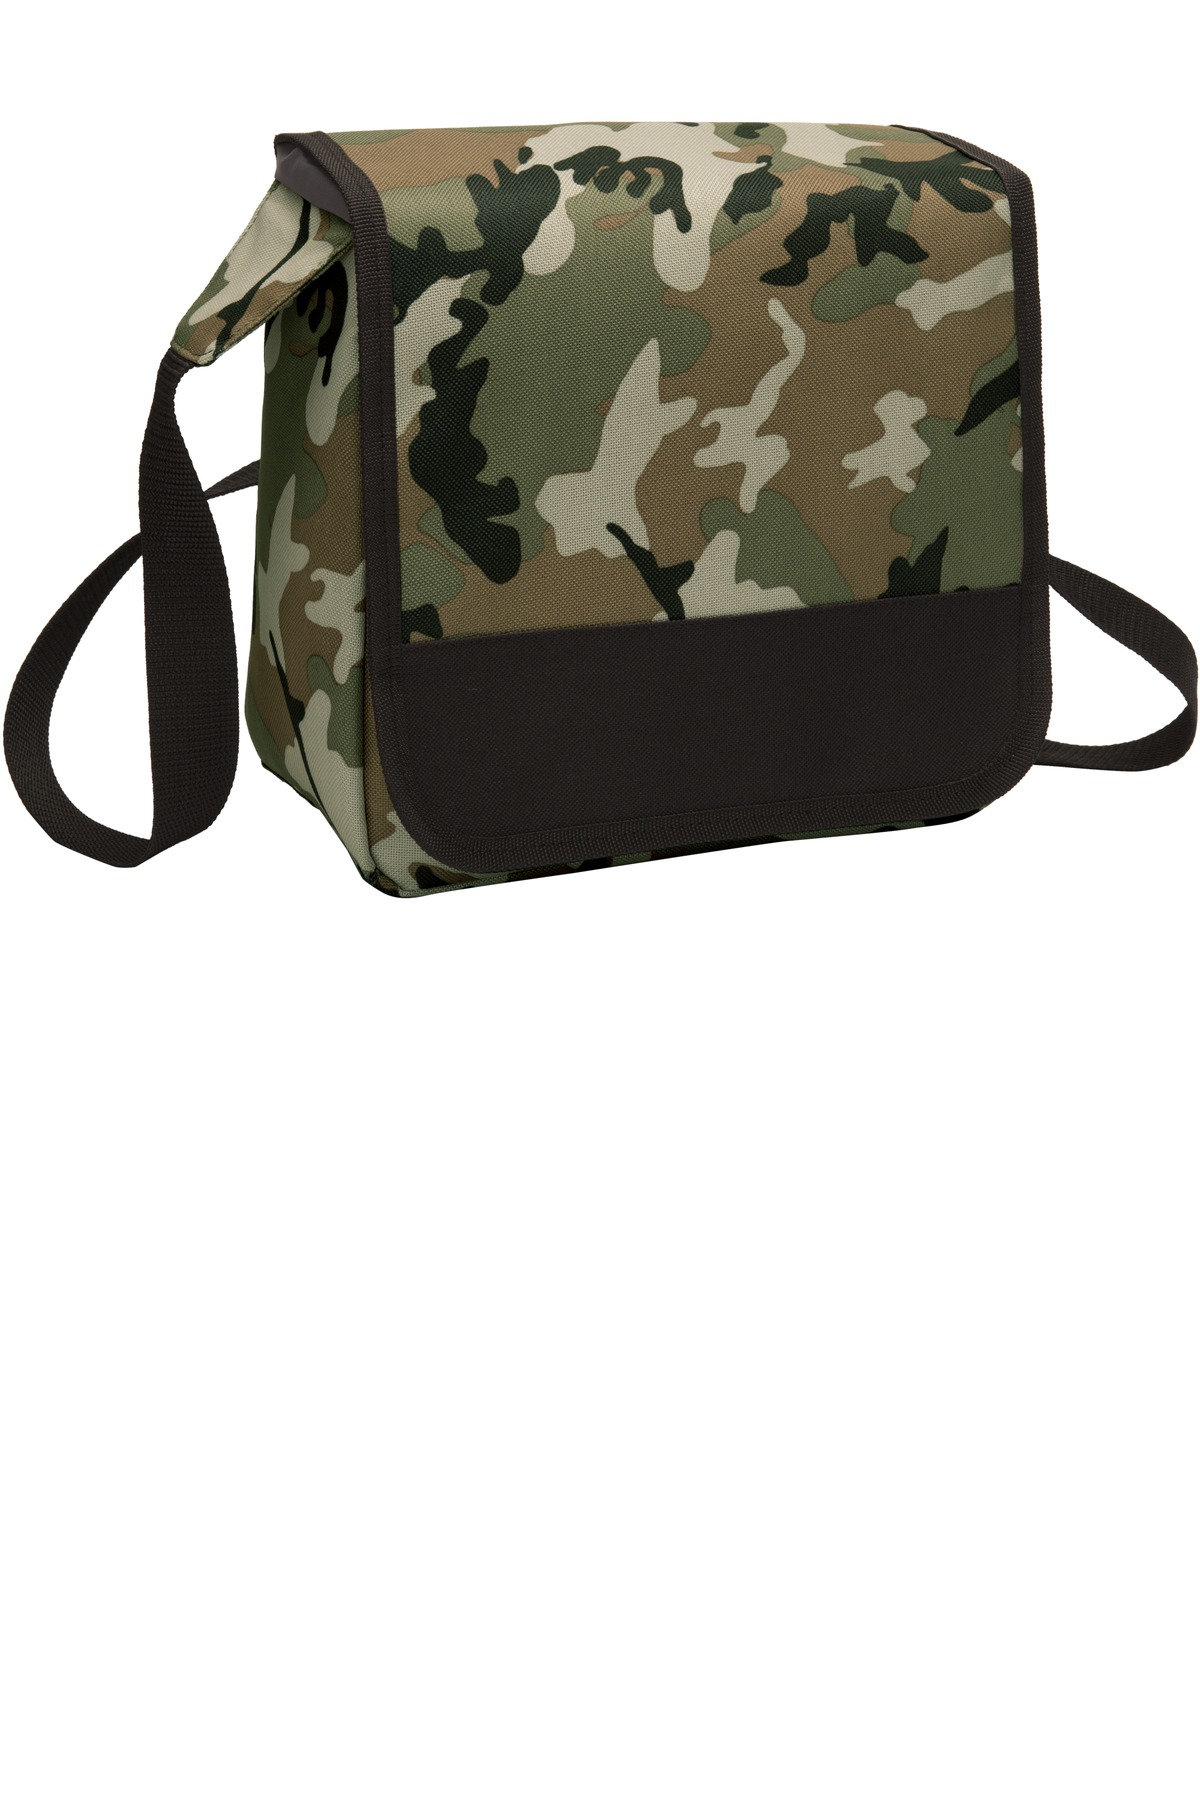 Port Authority ®  Lunch Cooler Messenger. BG753 - Military Camo/ Black